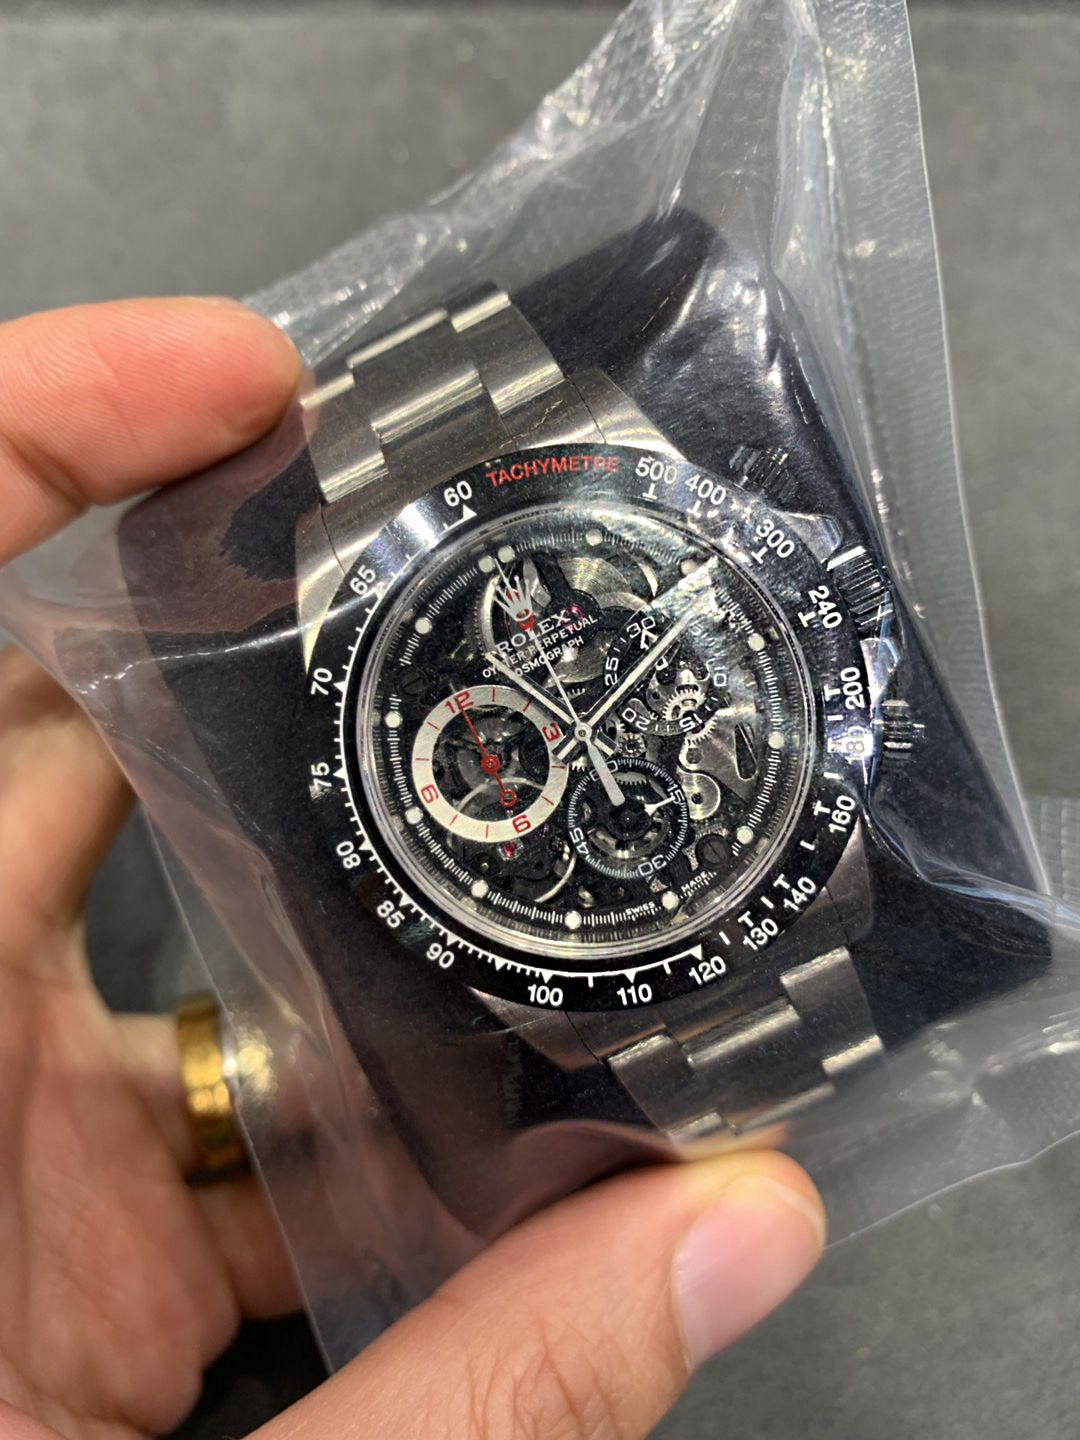 Rolex Artisans De Geneve La Barrichello Daytona Skeleton 40mm Watch Luxury Watches For Men Luxury Timepieces Watches For Men